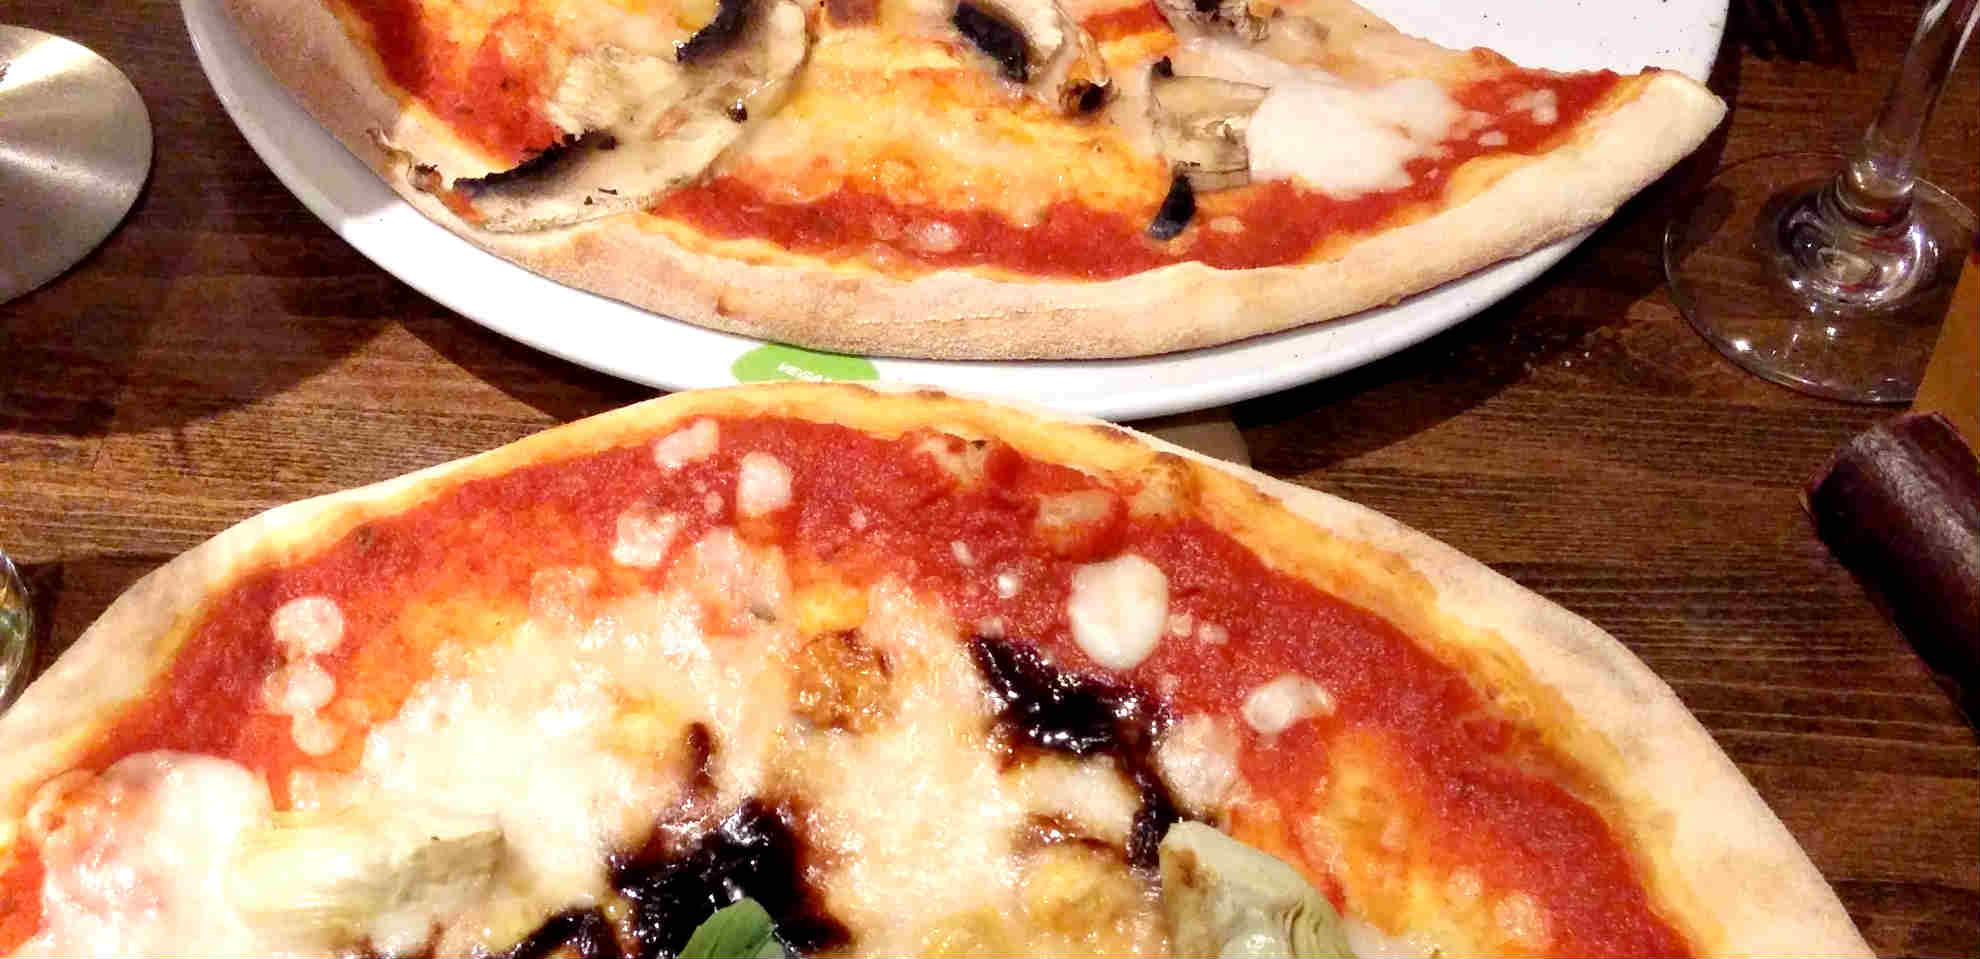 Vegan pizza at UK chain